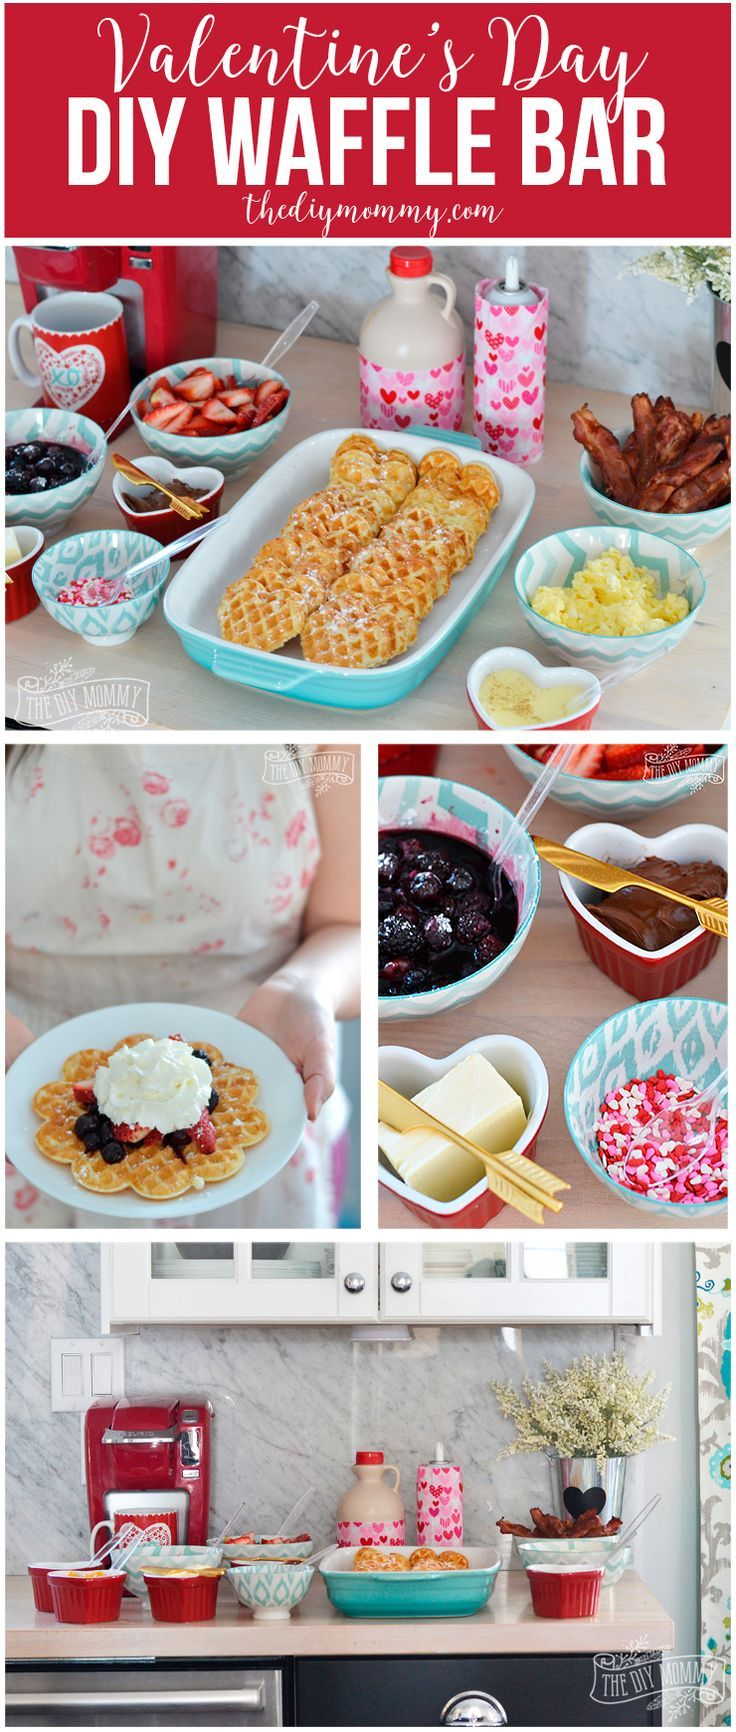 Valentine's Day DIY Waffle Bar with tons of waffle topping ideas!  #ValentinesDay #brunch